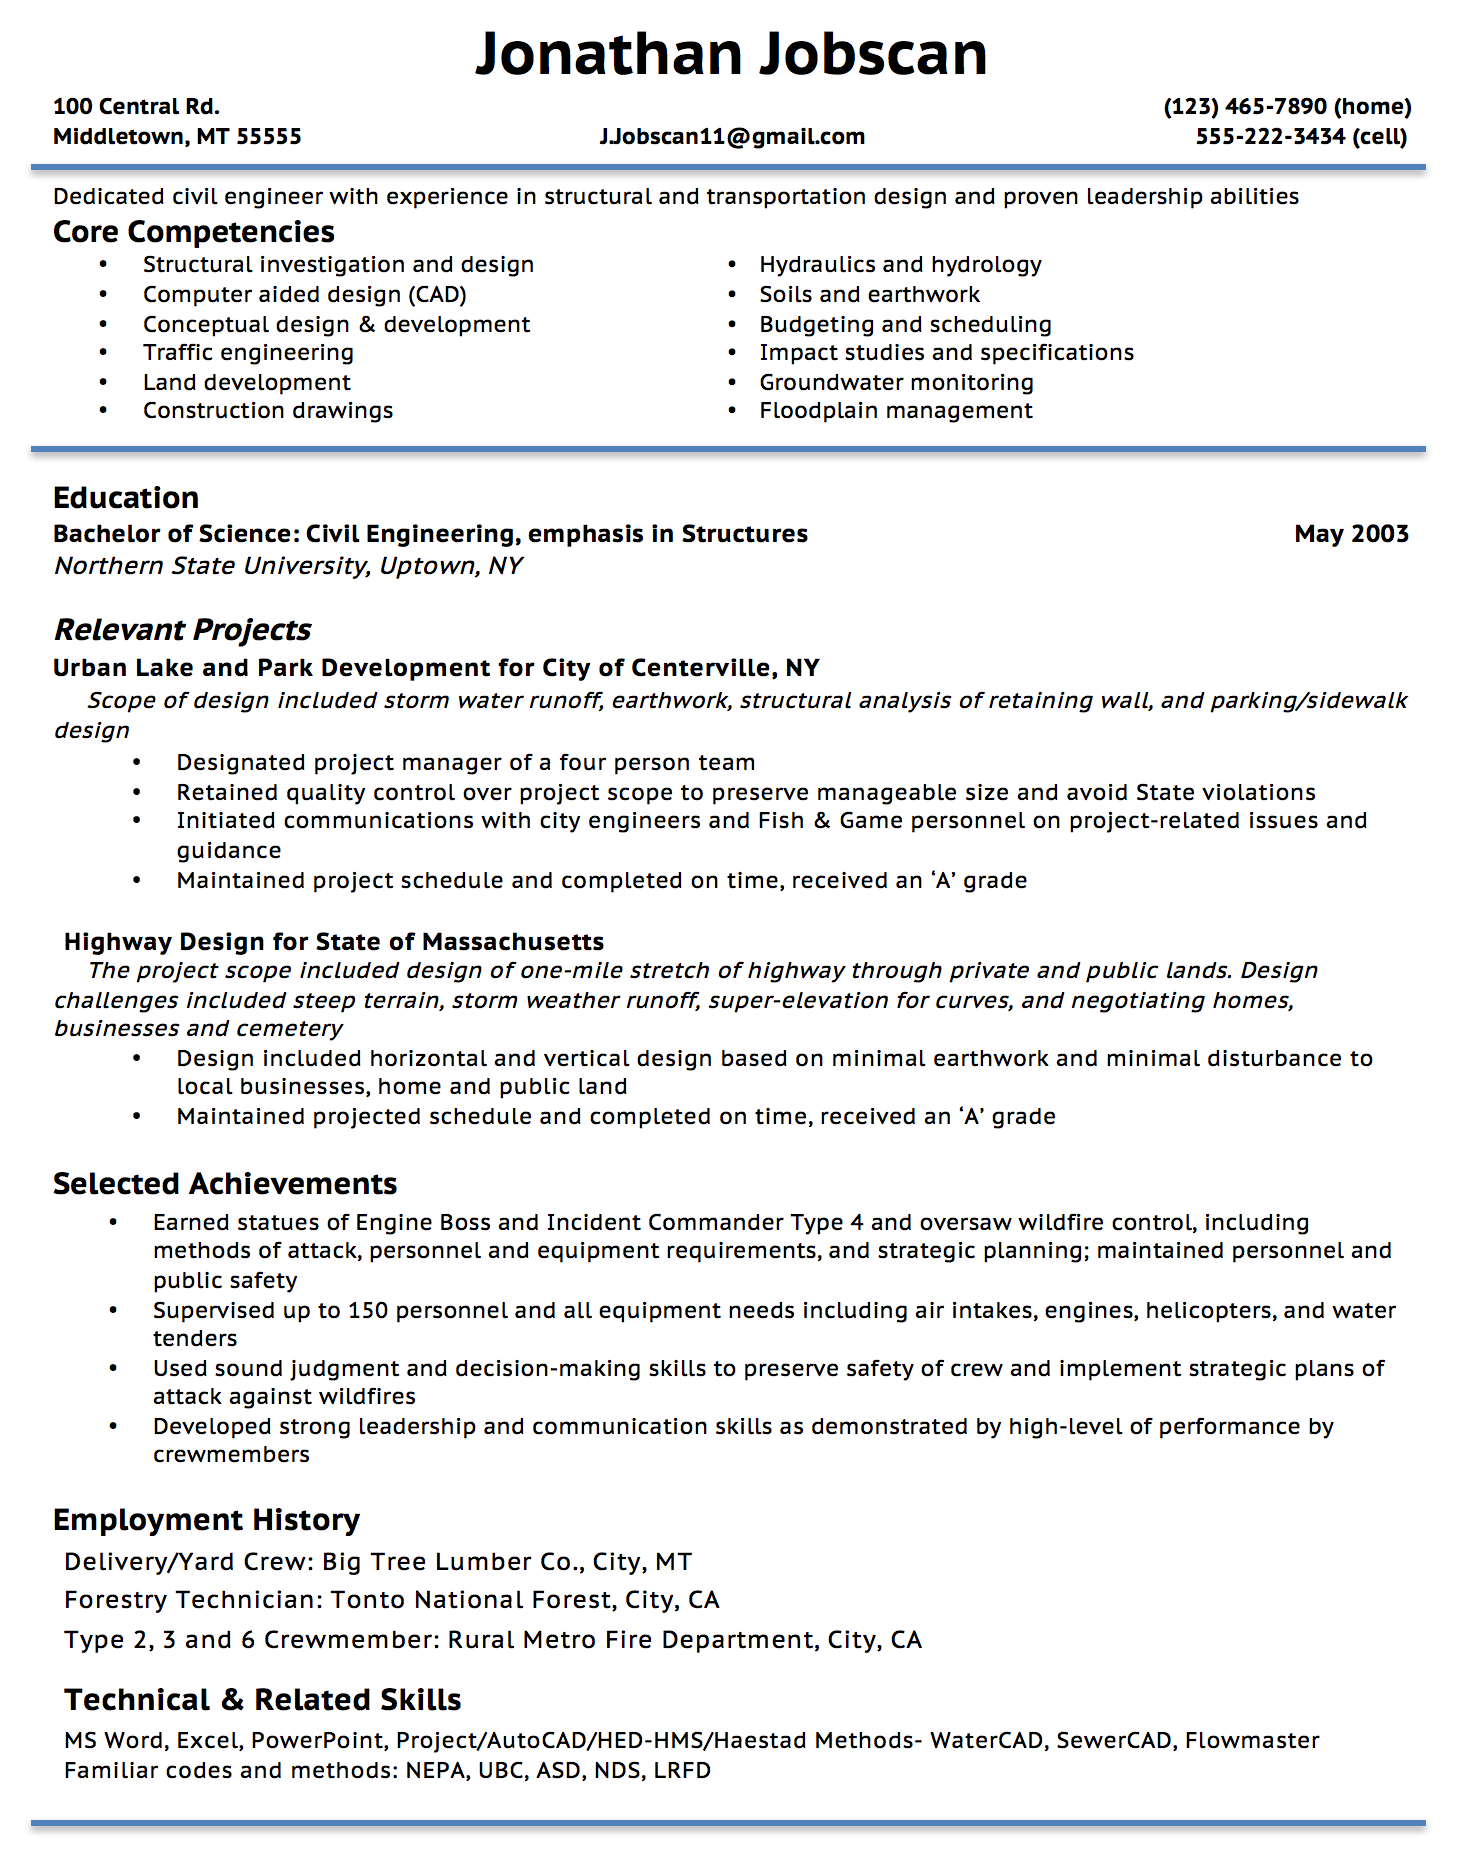 Picnictoimpeachus  Fascinating Resume Writing Guide  Jobscan With Excellent Example Of A Functional Resume Format With Easy On The Eye Pharmacy Technician Resume Objective Also Icu Rn Resume In Addition Ba Resume And Aircraft Mechanic Resume As Well As Functional Format Resume Additionally Resume Keywords And Phrases From Jobscanco With Picnictoimpeachus  Excellent Resume Writing Guide  Jobscan With Easy On The Eye Example Of A Functional Resume Format And Fascinating Pharmacy Technician Resume Objective Also Icu Rn Resume In Addition Ba Resume From Jobscanco